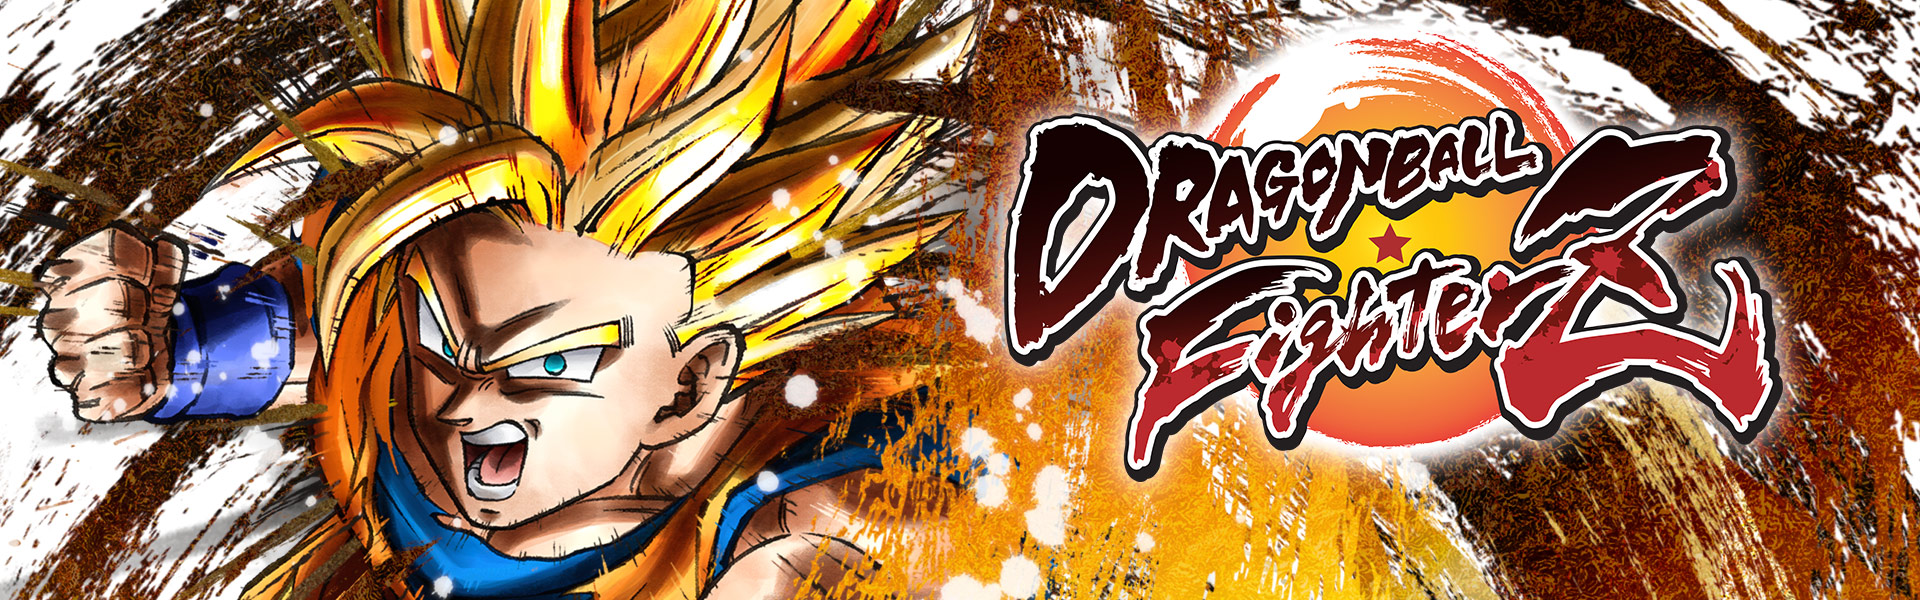 Dragon ball fighterz, Super Saiyan Goku facing forward and attacking